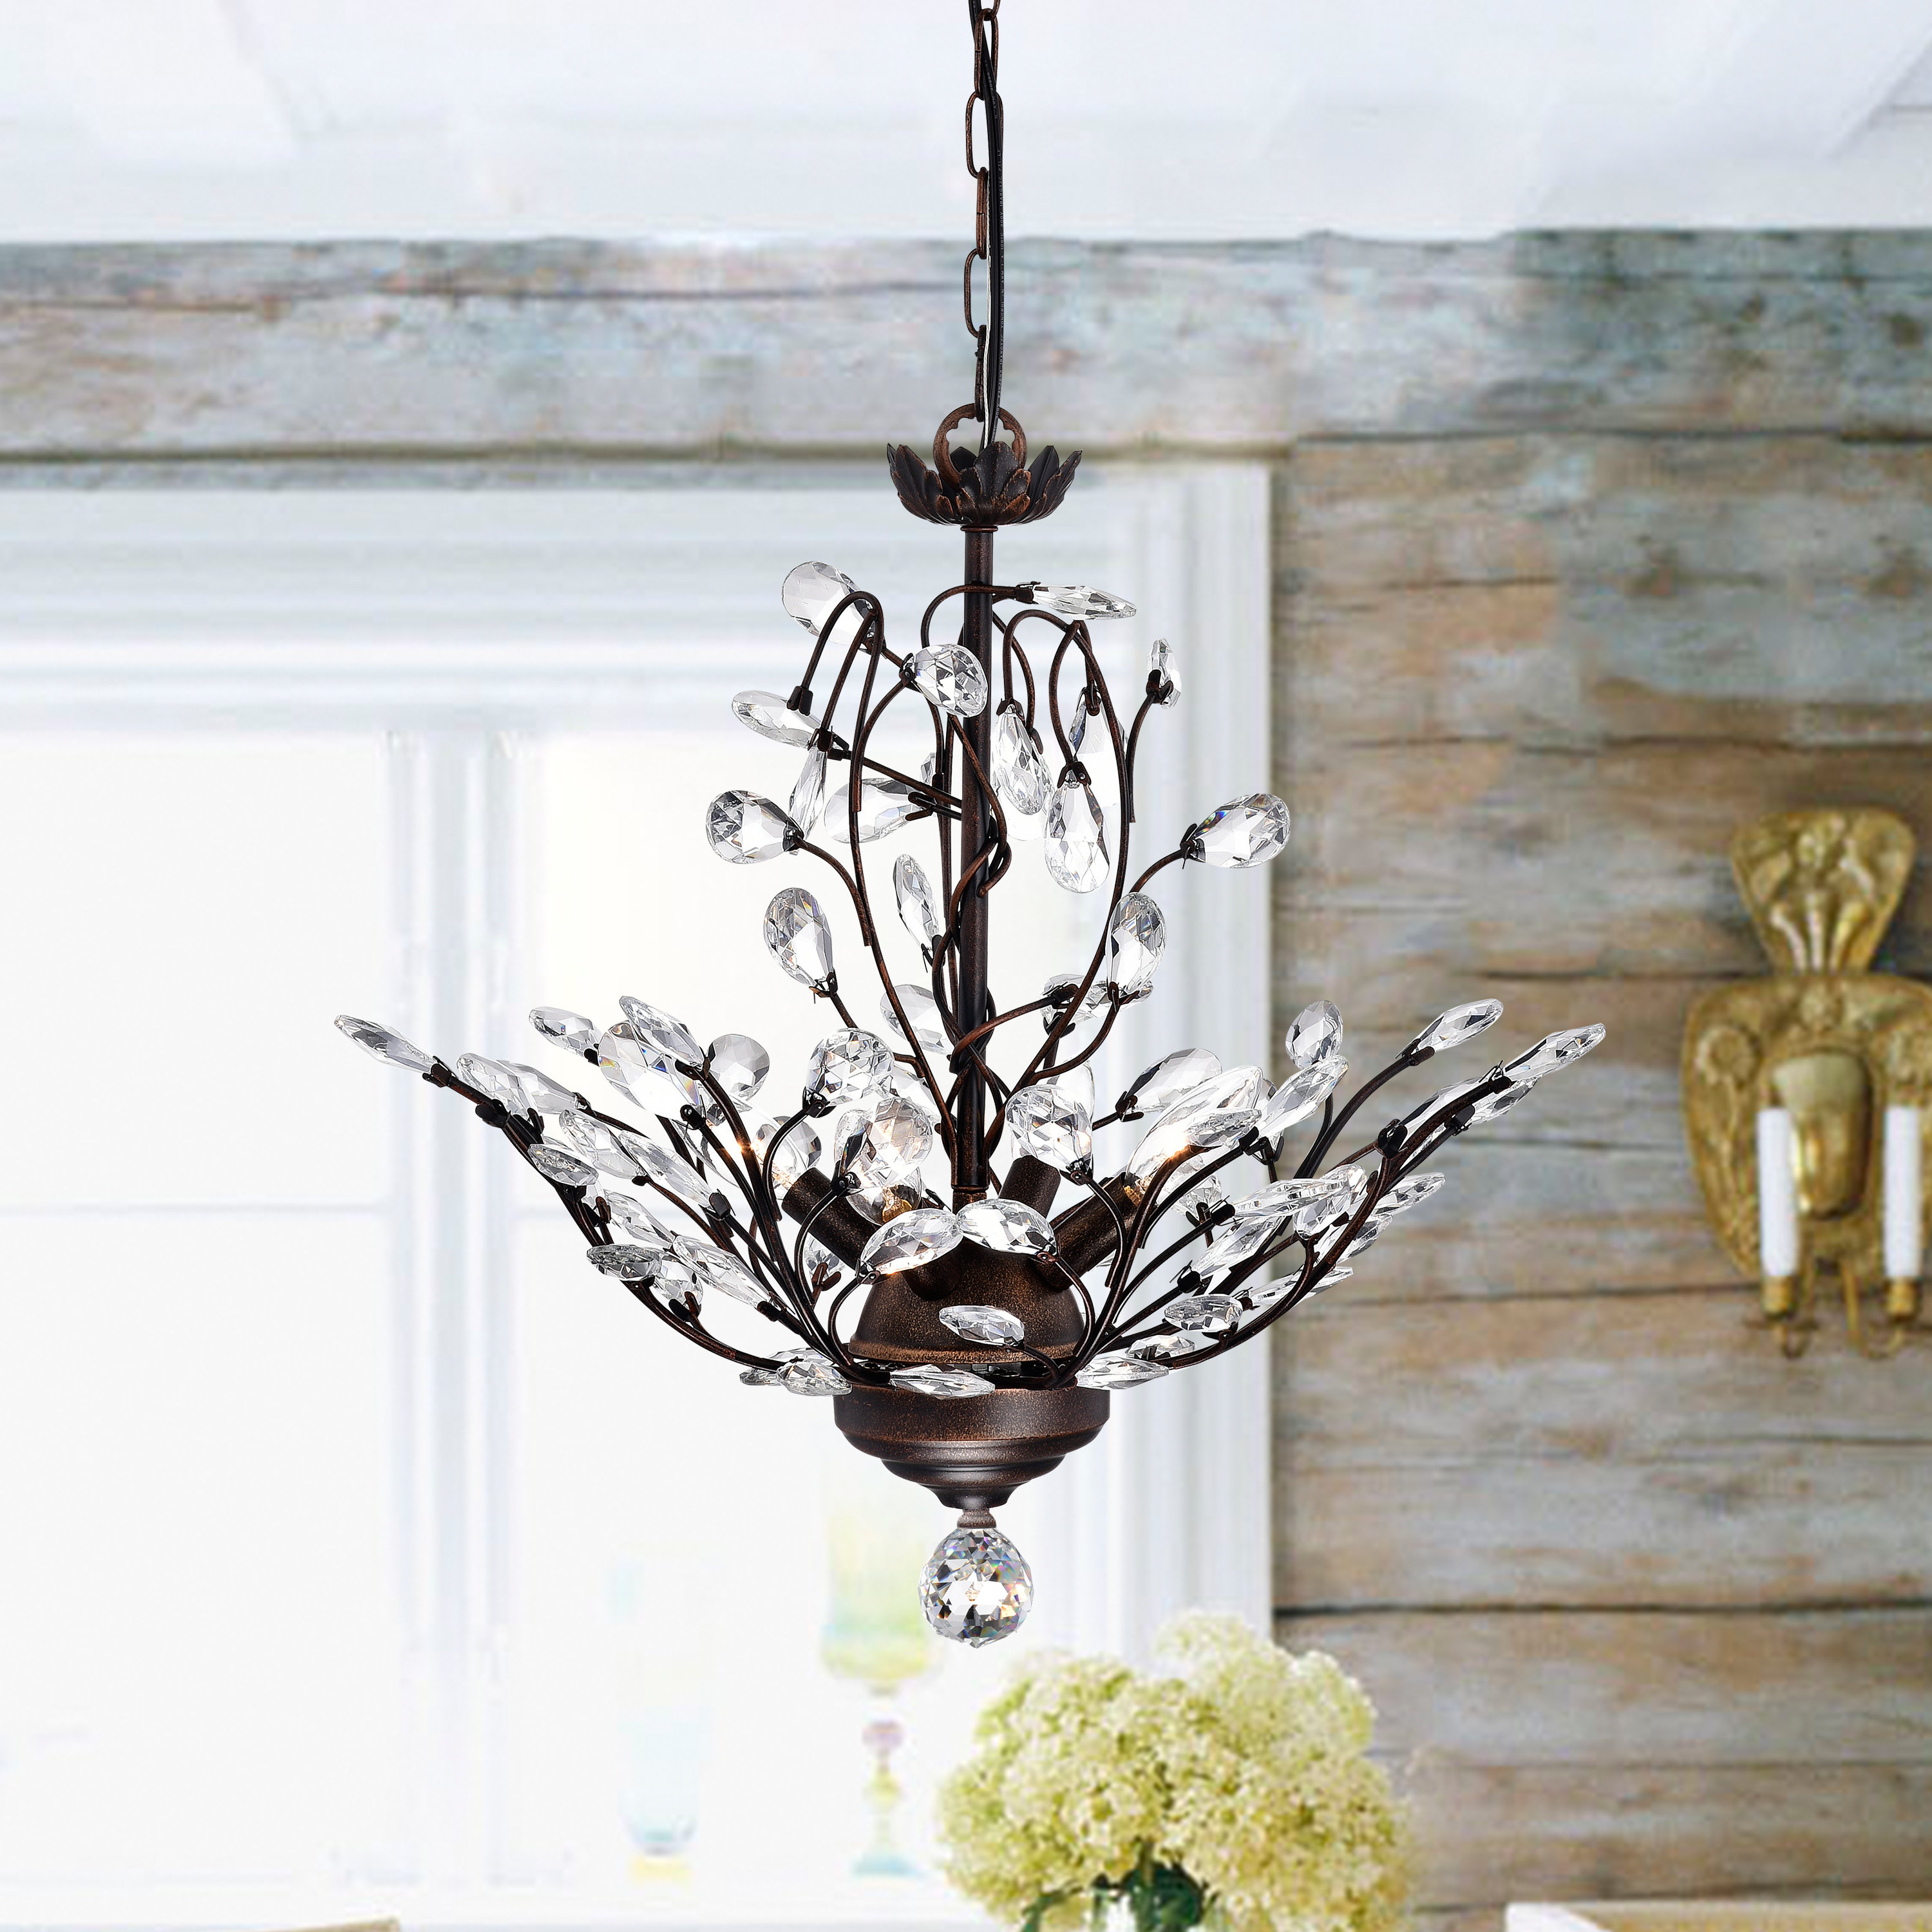 Alijah 4-Light Led Candle Style Chandelier with regard to Shaylee 8-Light Candle Style Chandeliers (Image 1 of 30)